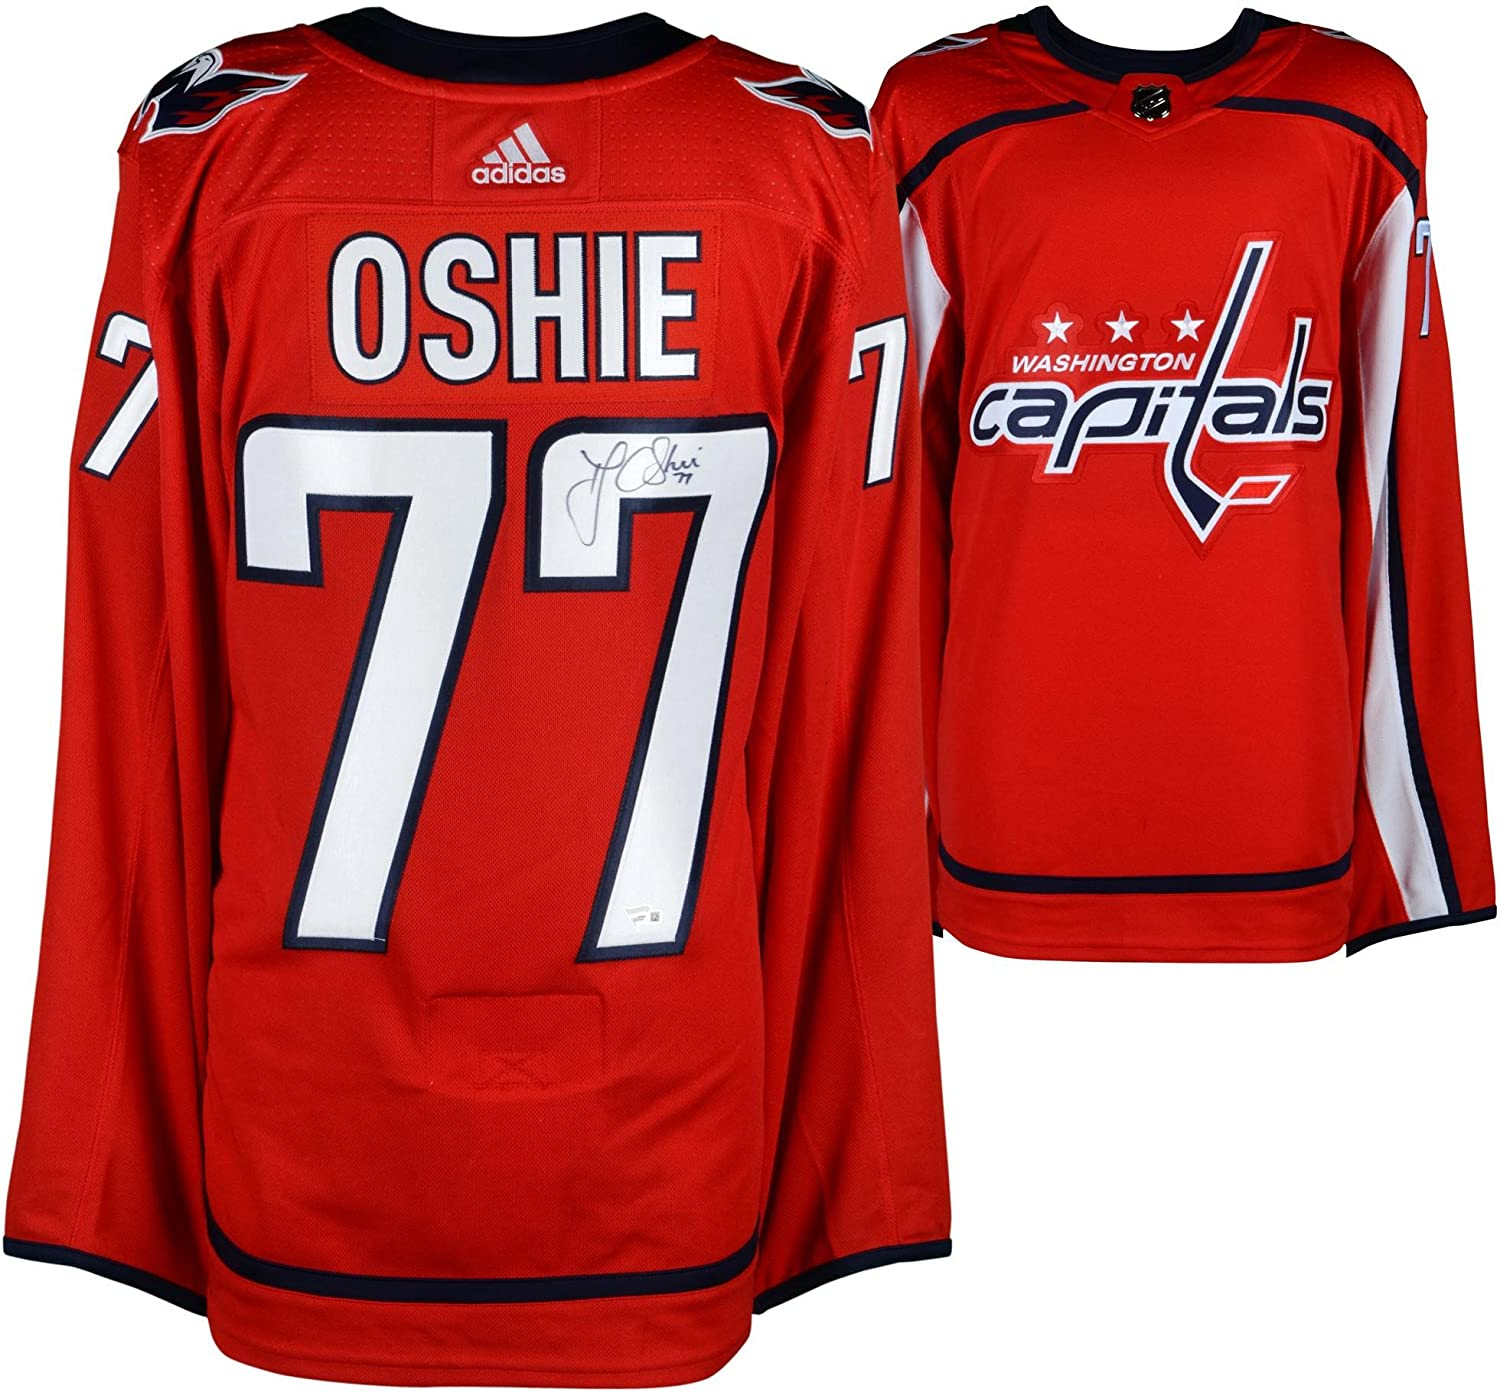 the best attitude f66b1 acca0 T.J. Oshie Washington Capitals Autographed Red Adidas ...